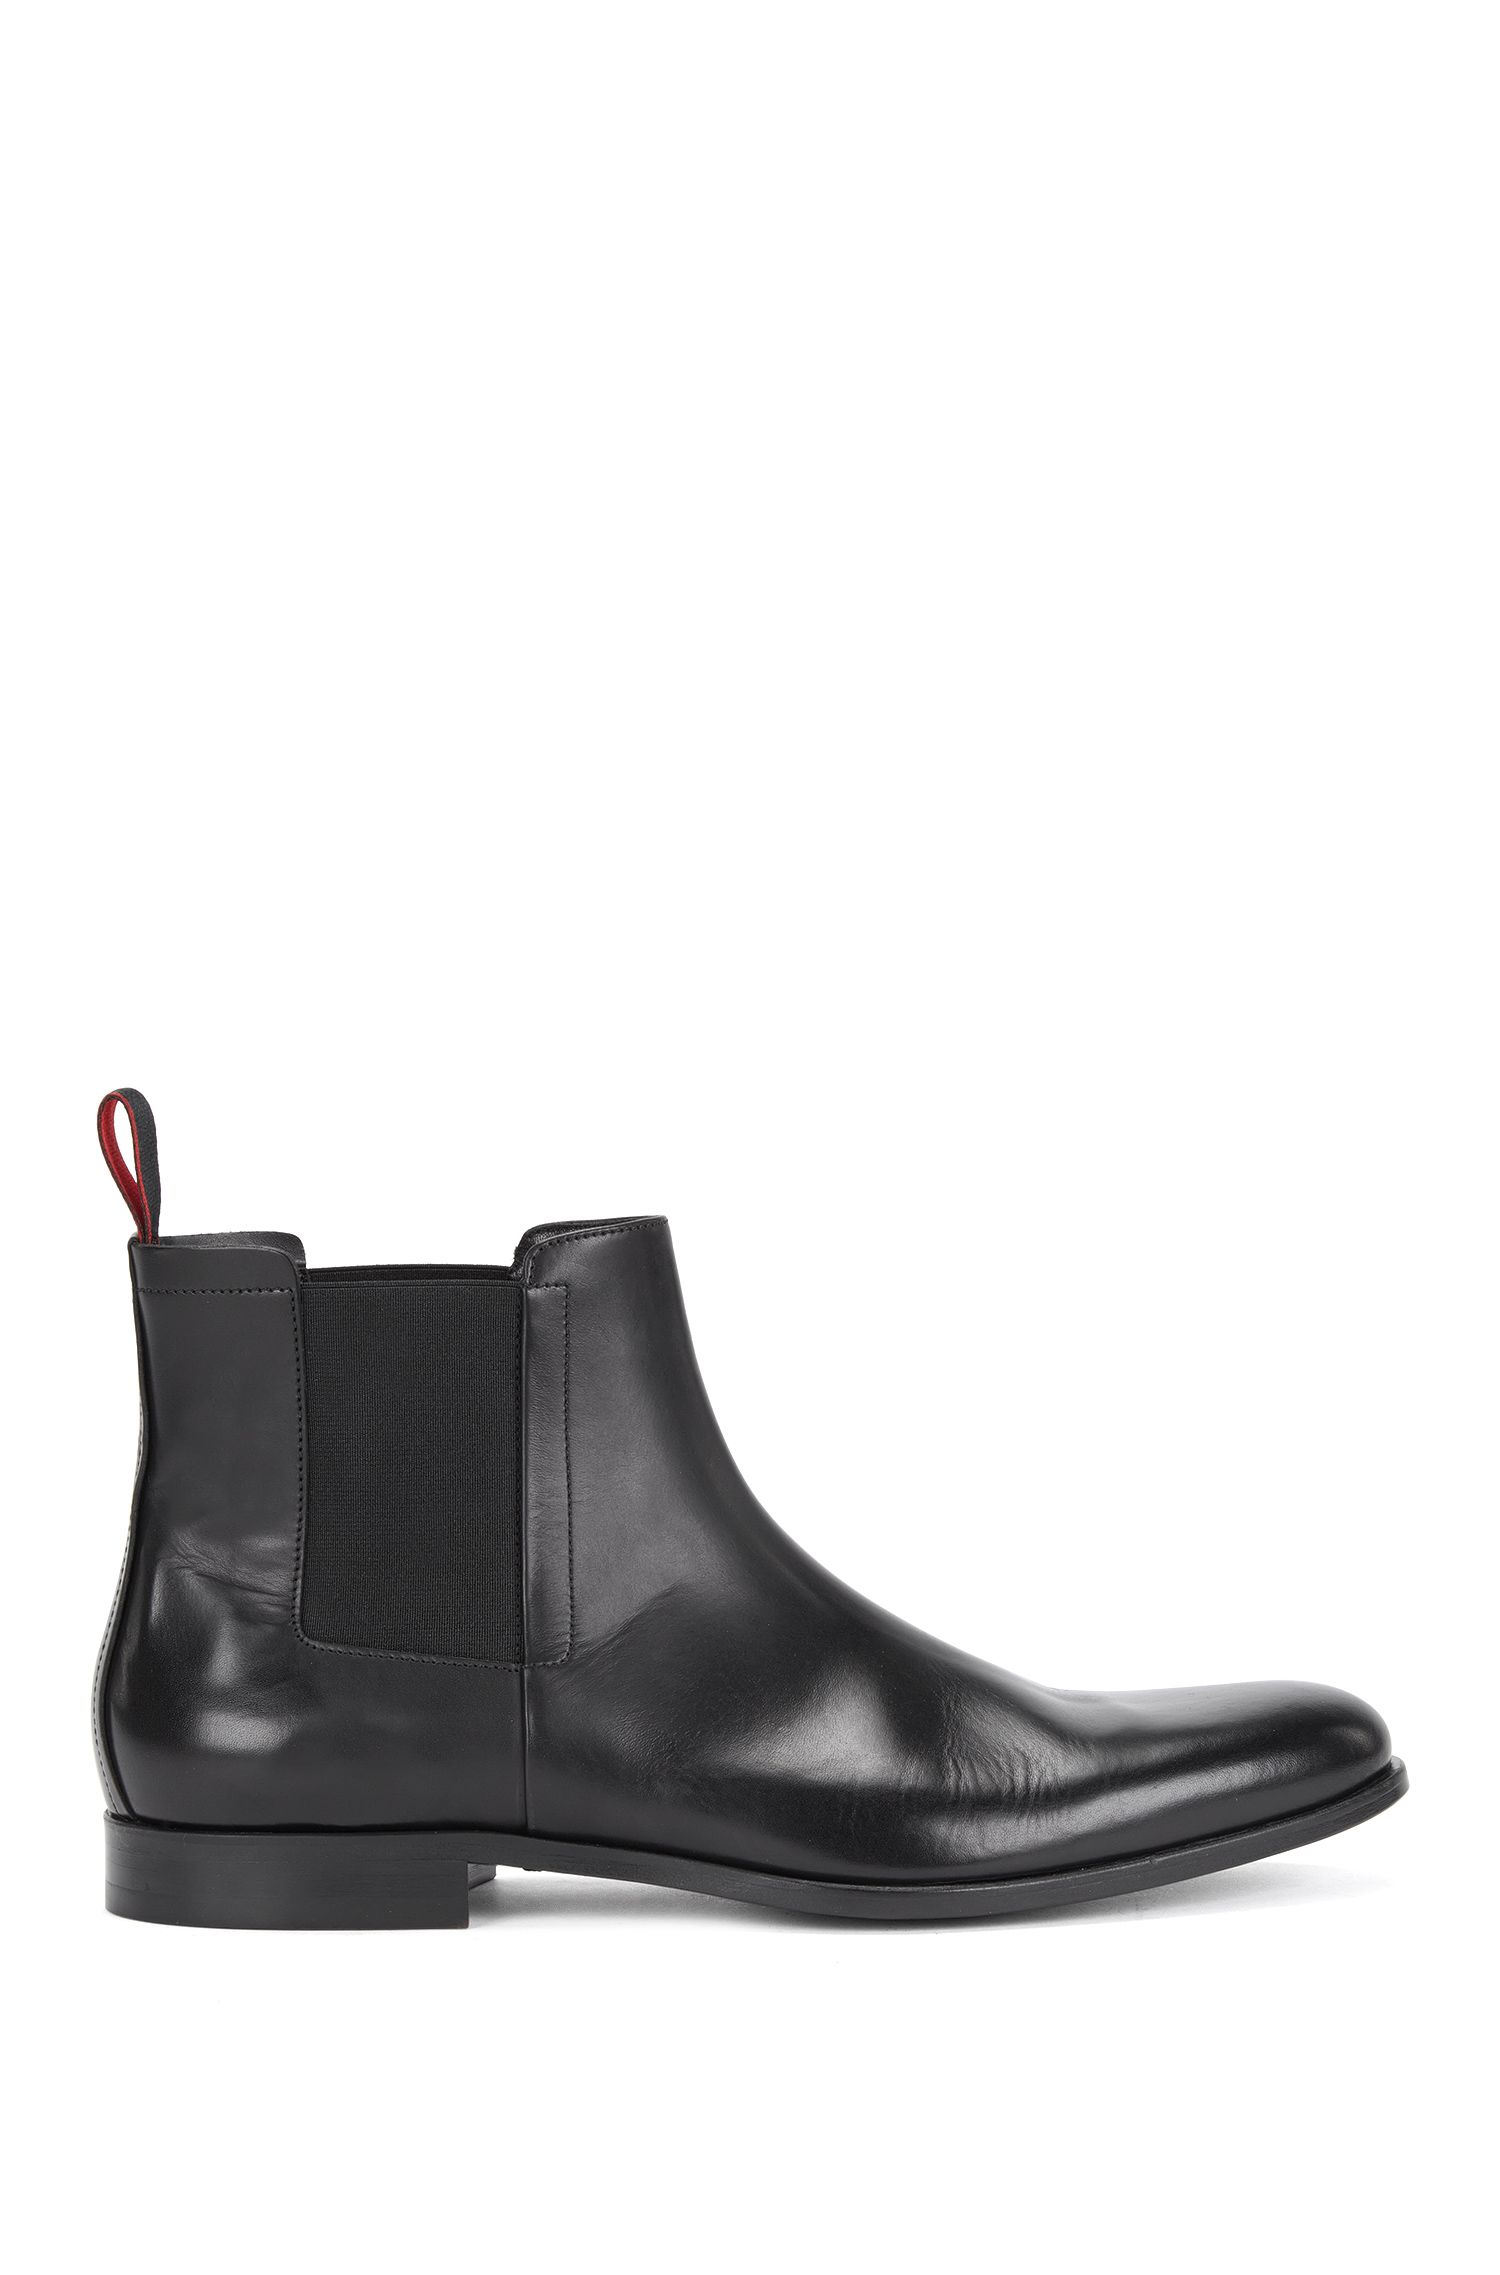 Italian-made leather Chelsea boots